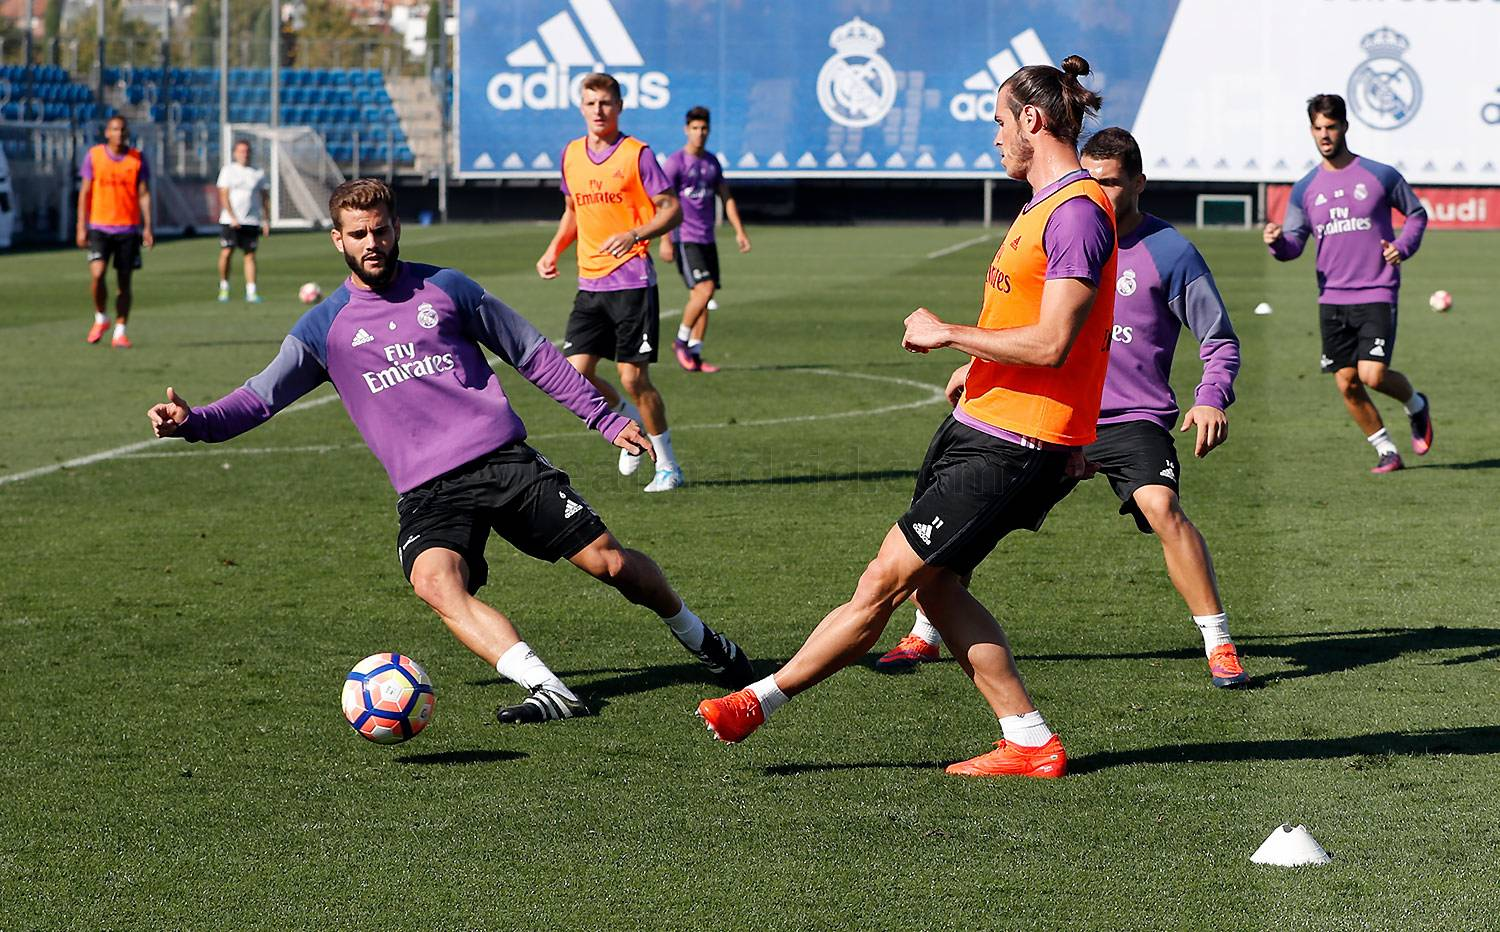 Real Madrid - Entrenamiento del Real Madrid - 01-10-2016